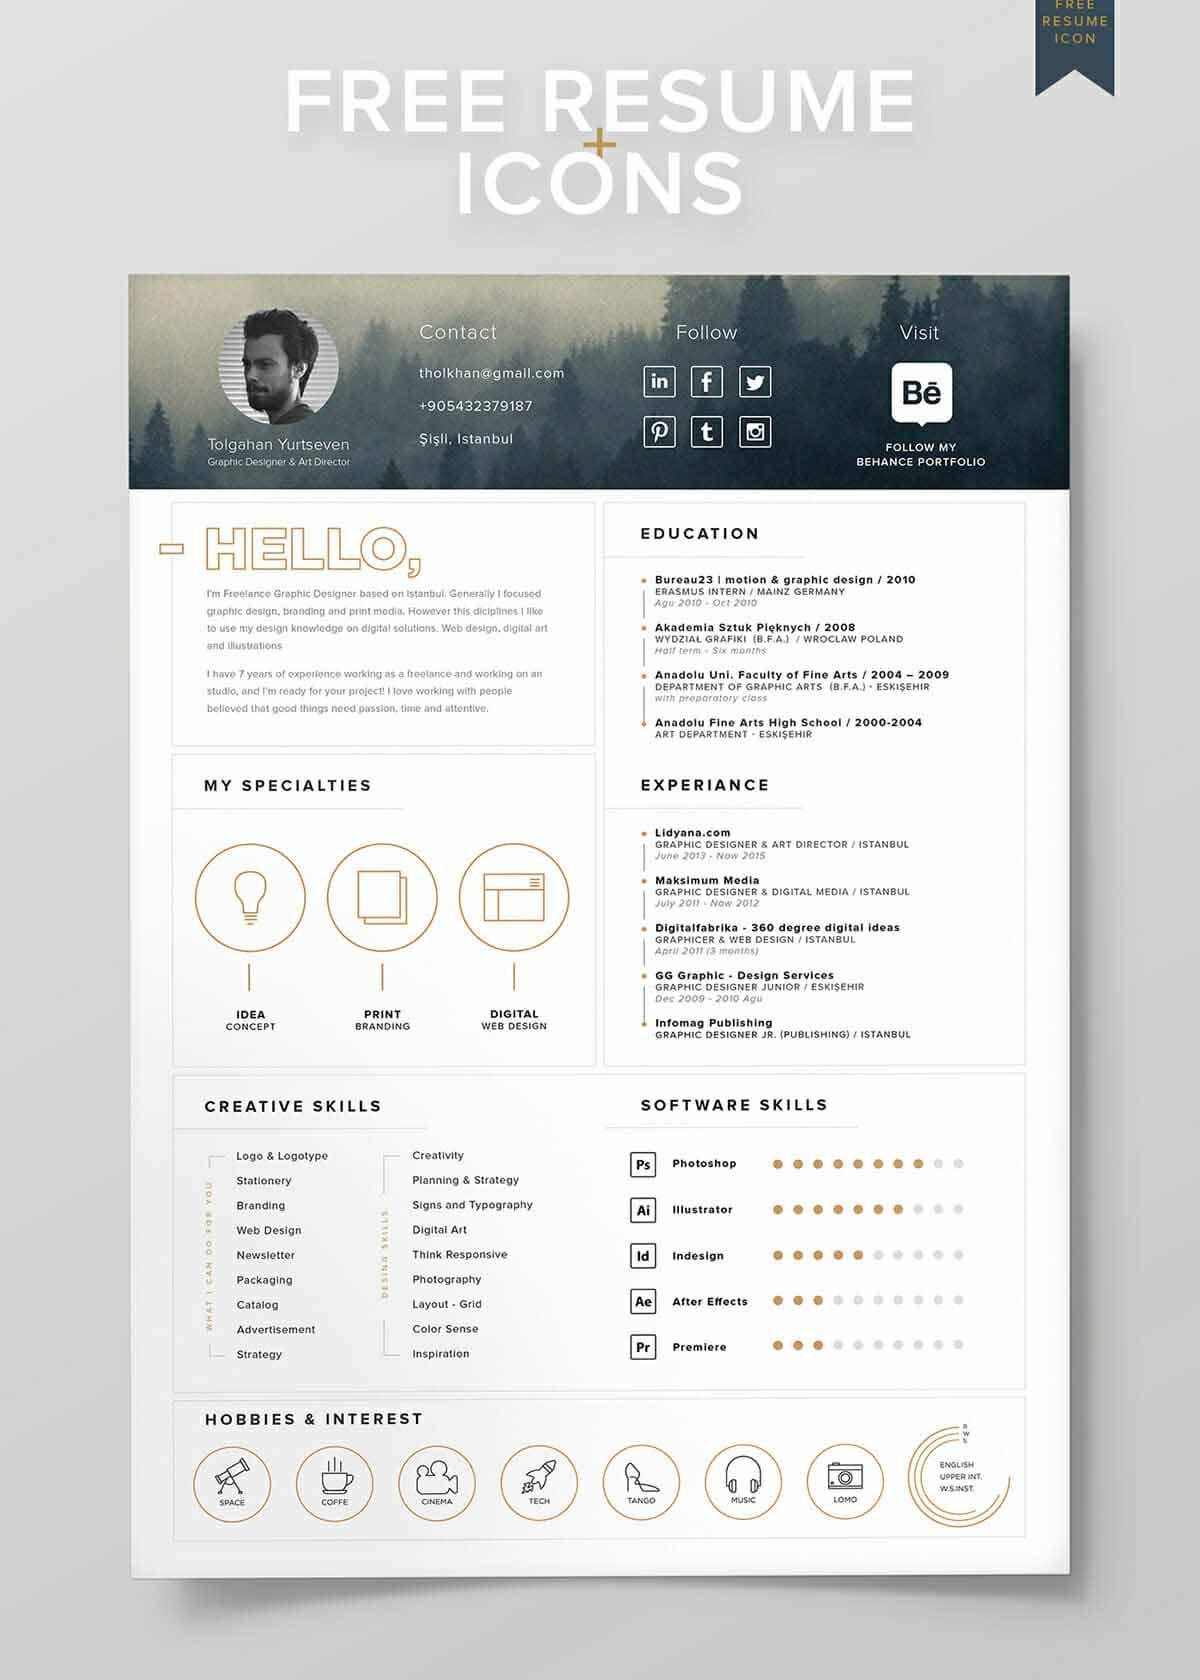 good resume design with golden icons and photo in header